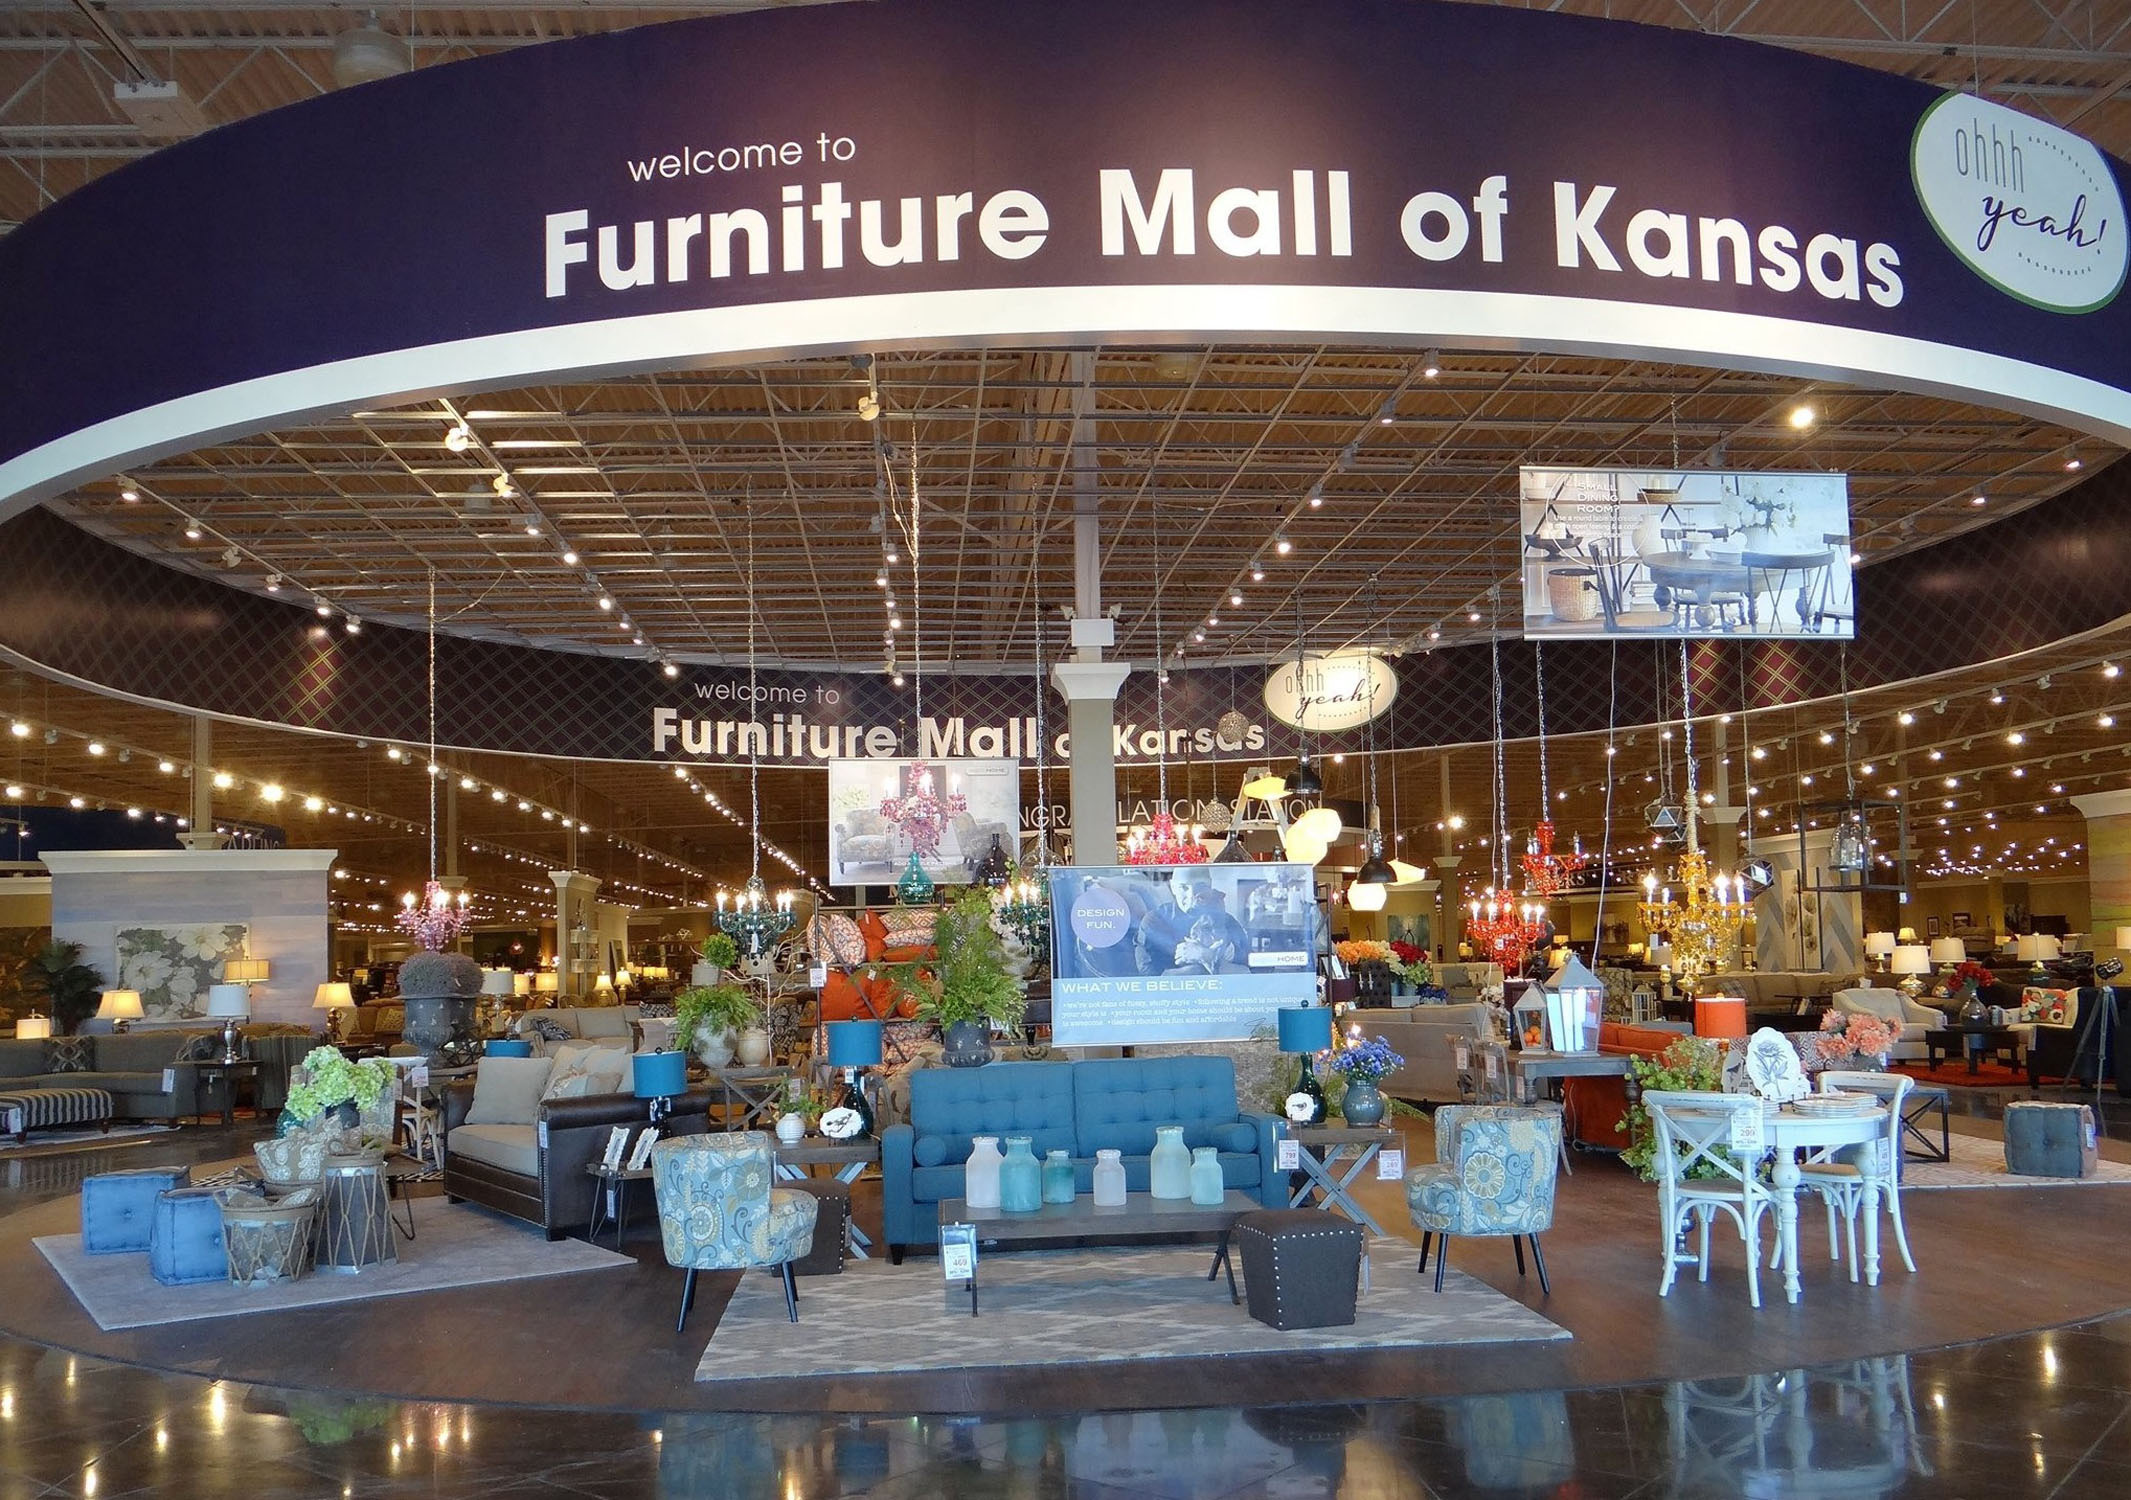 ... Discovered The Land Of Oz. It Was Thirty Three Years Later That Ben And  Eva Winter Envisioned Their Own Magic At Emporia, Kansas. U201cA Furniture  Store ...